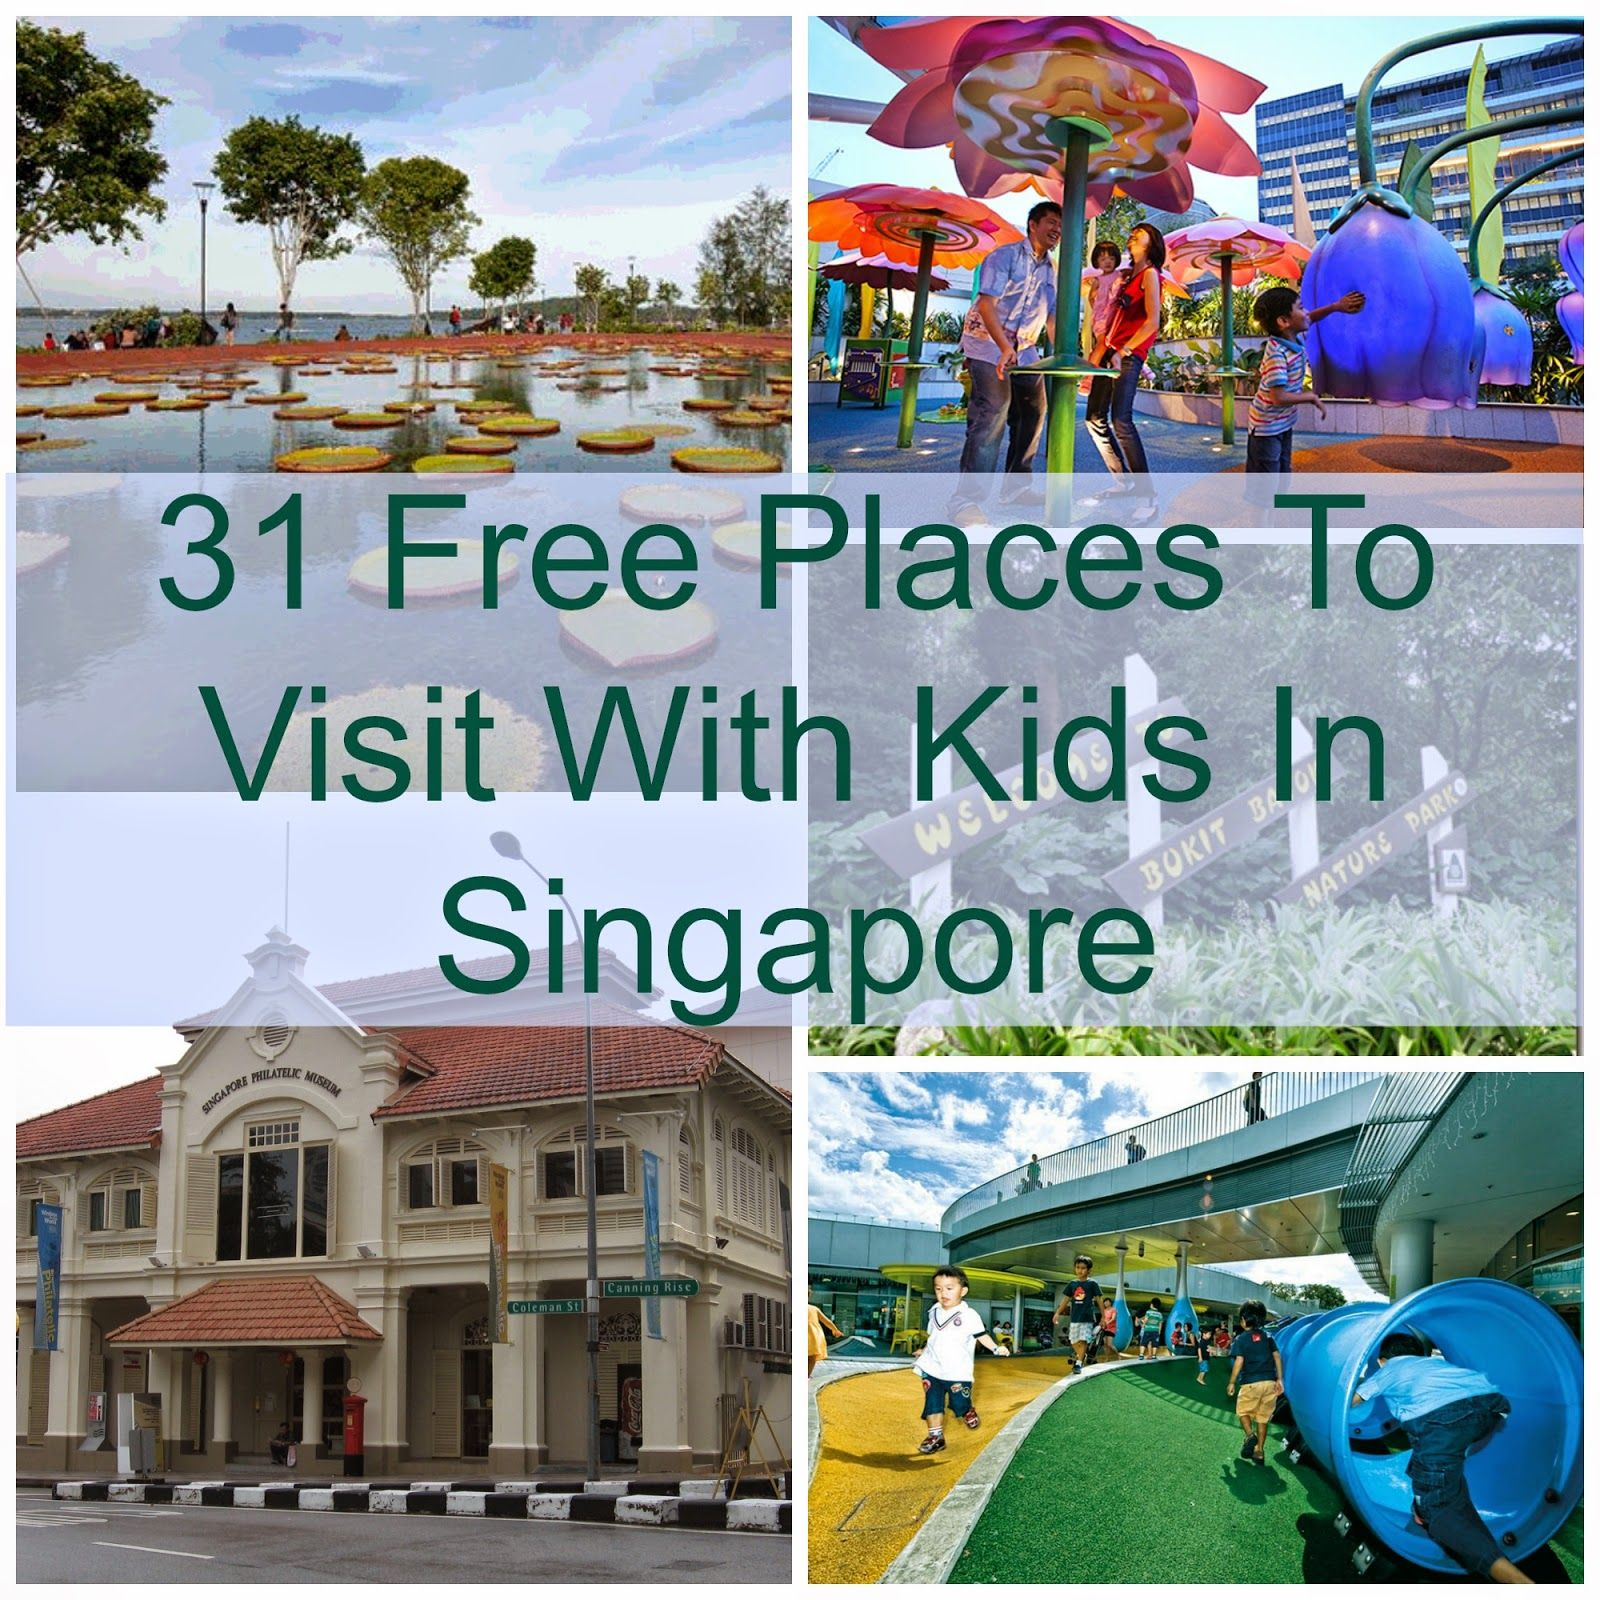 31 Free Places To Visit With Kids In Singapore Mom Lifestyle Blogs Singapore Travel Holiday In Singapore Singapore With Kids